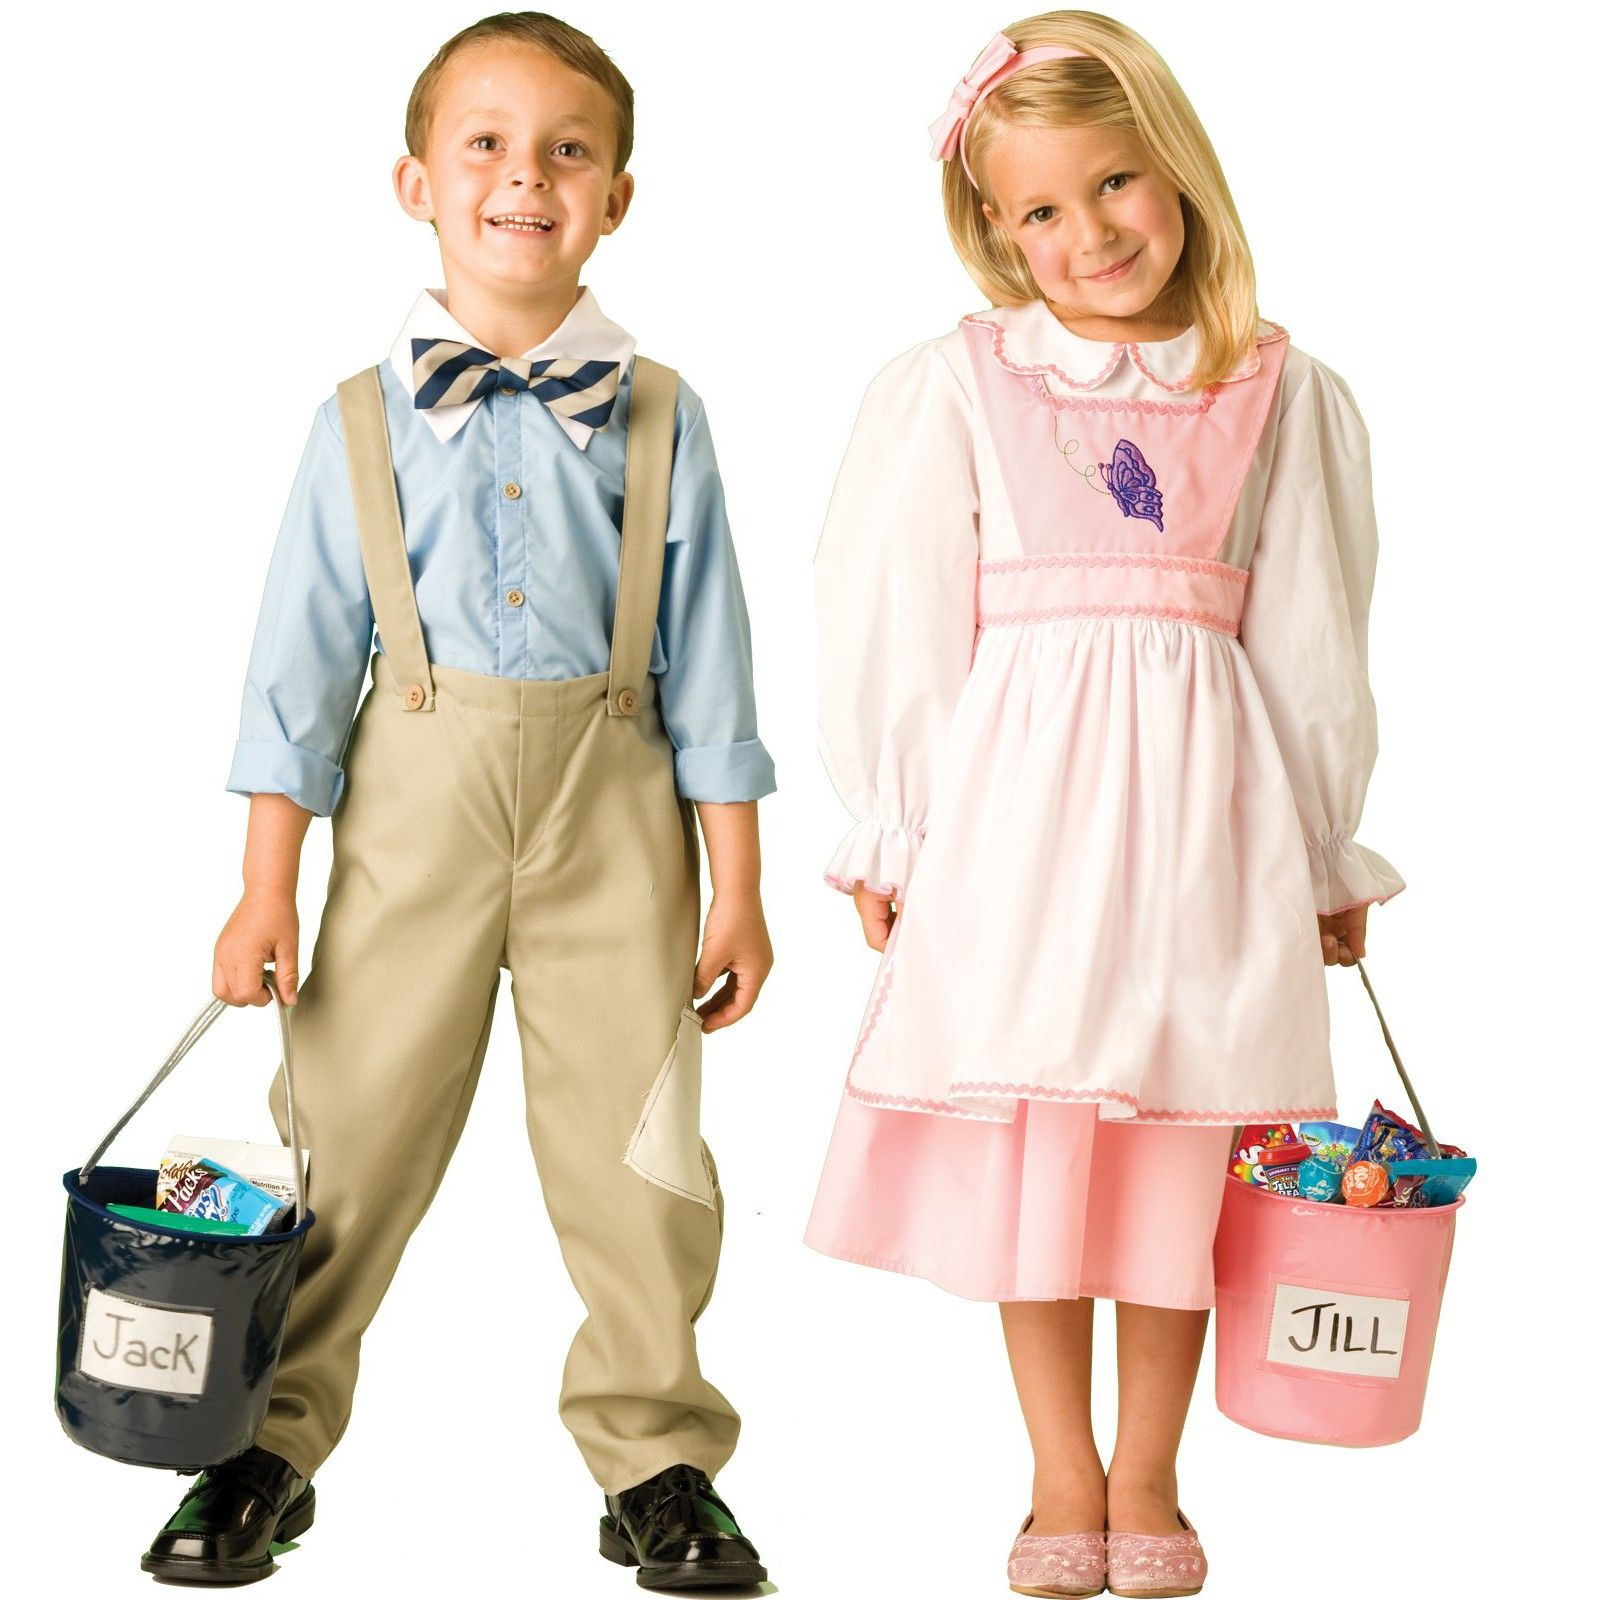 Sexy jack and jill costumes